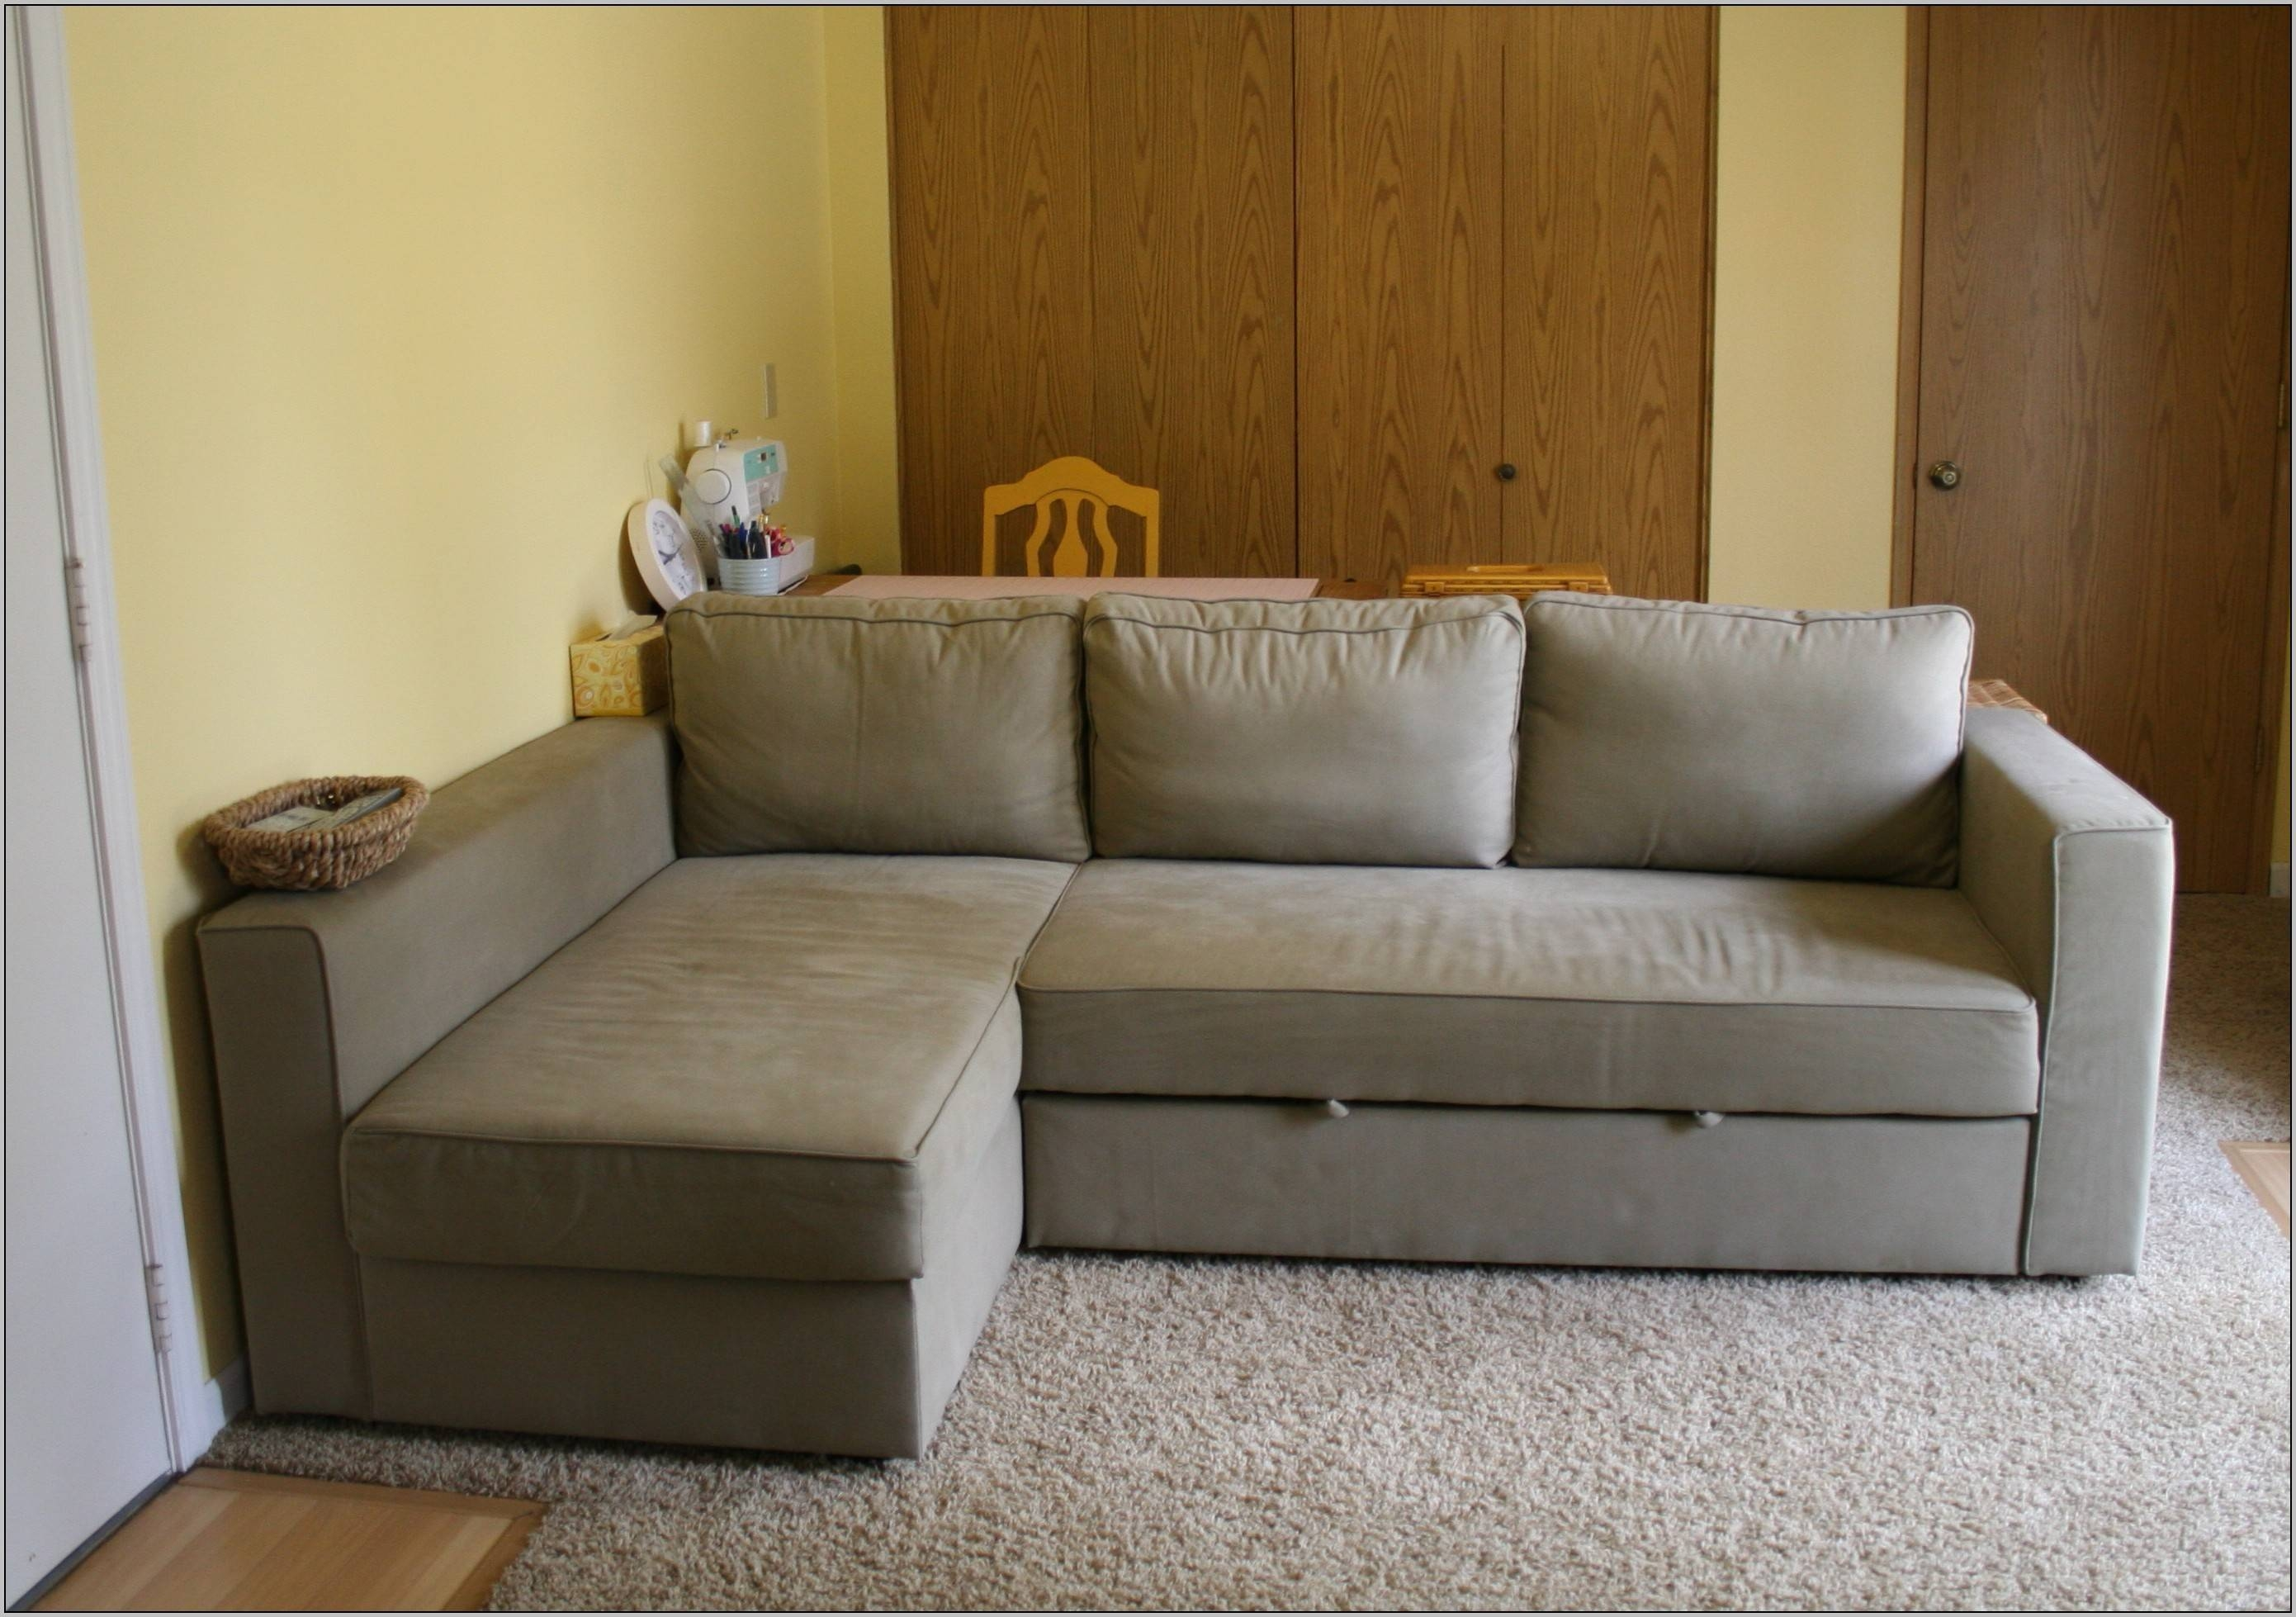 Sectional Sleeper Sofas Ikea | Tehranmix Decoration Regarding Ikea Sectional Sleeper Sofa (View 13 of 25)